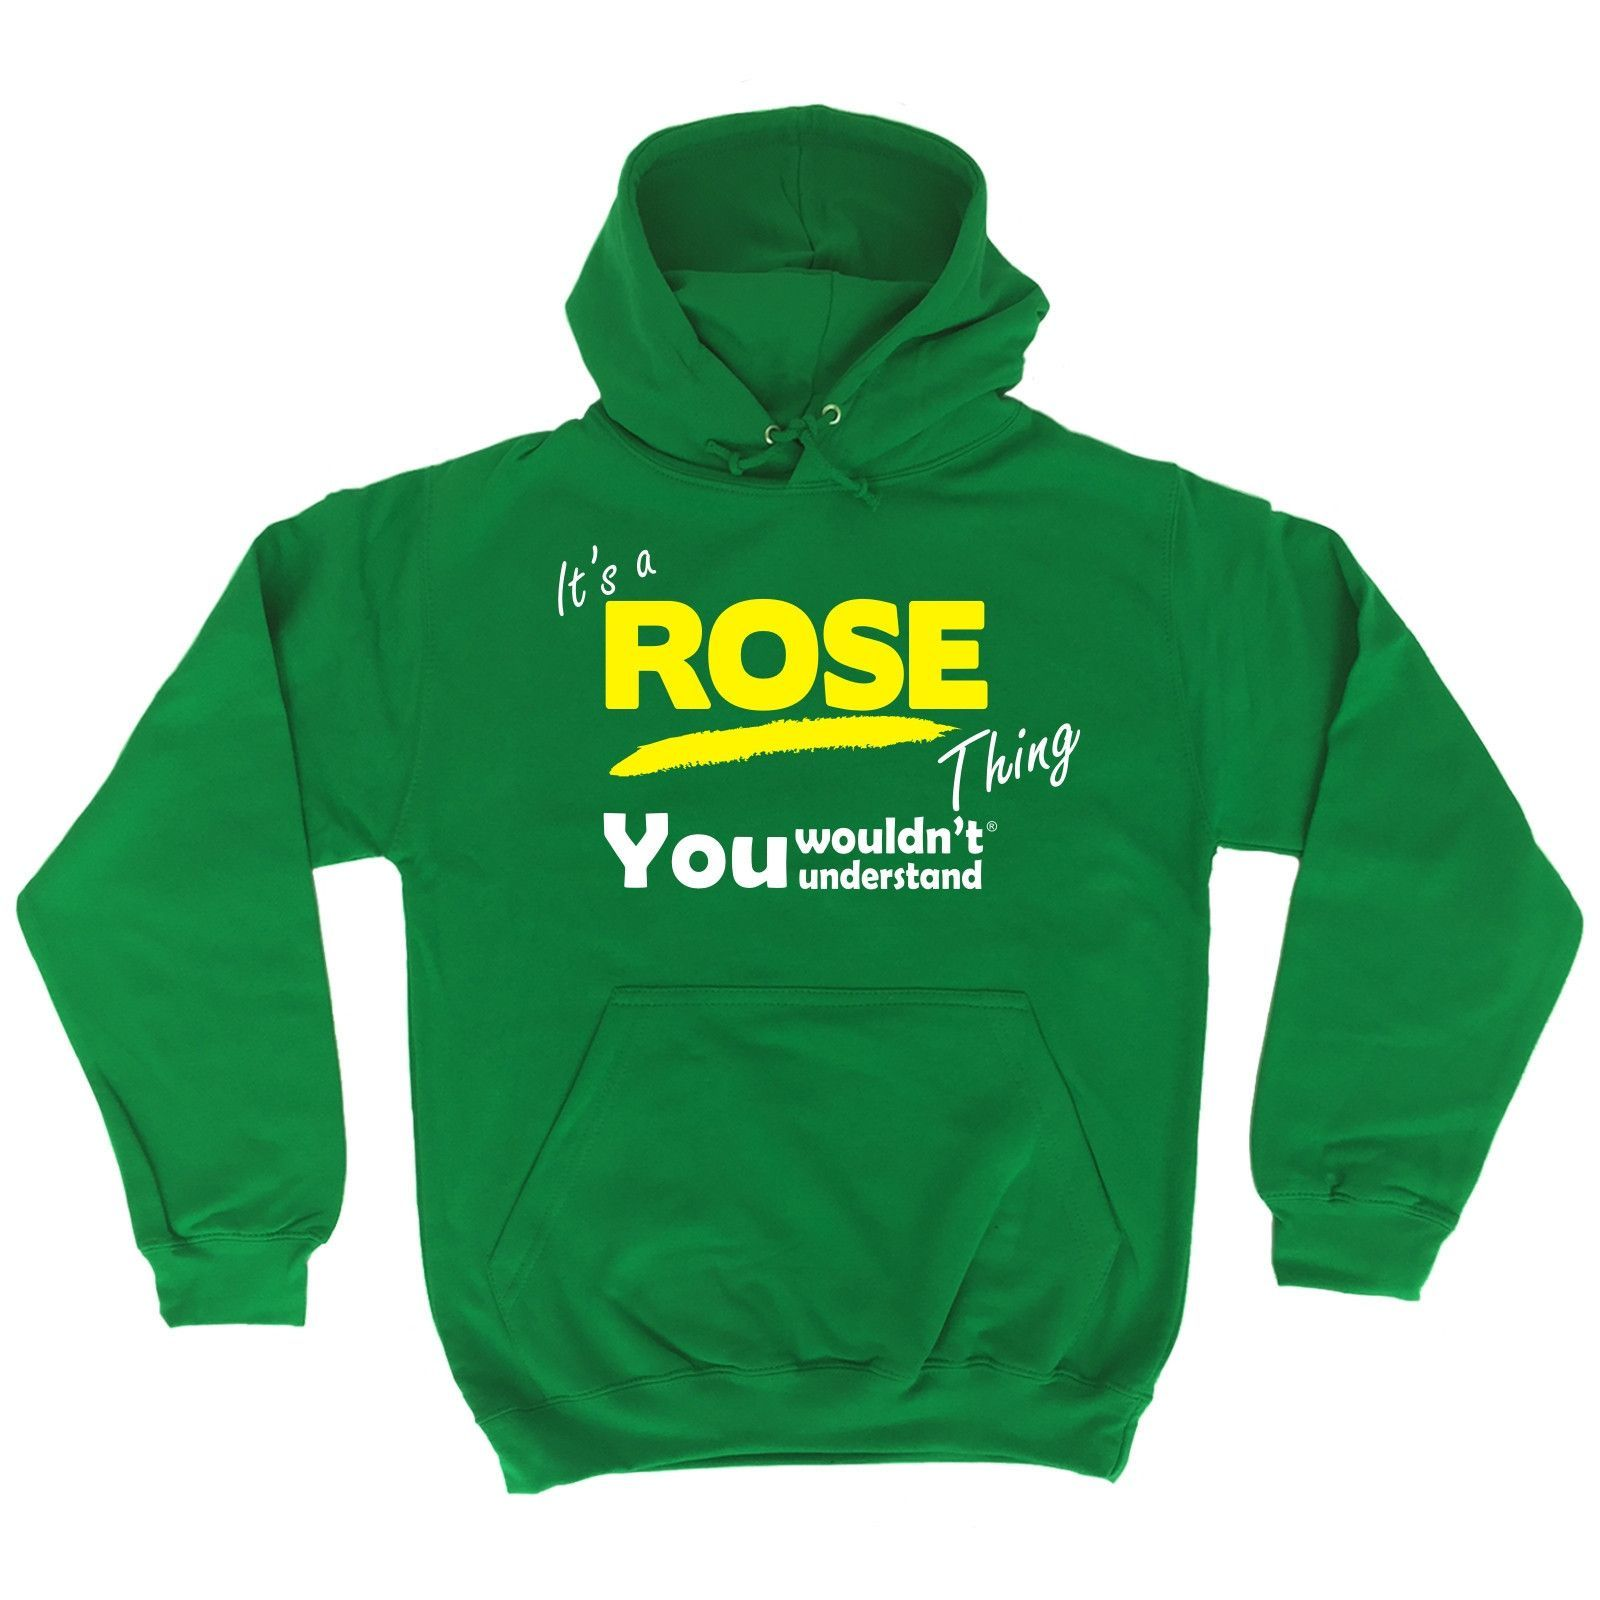 123t USA It's A Rose Thing You Wouldn't Understand Funny Hoodie